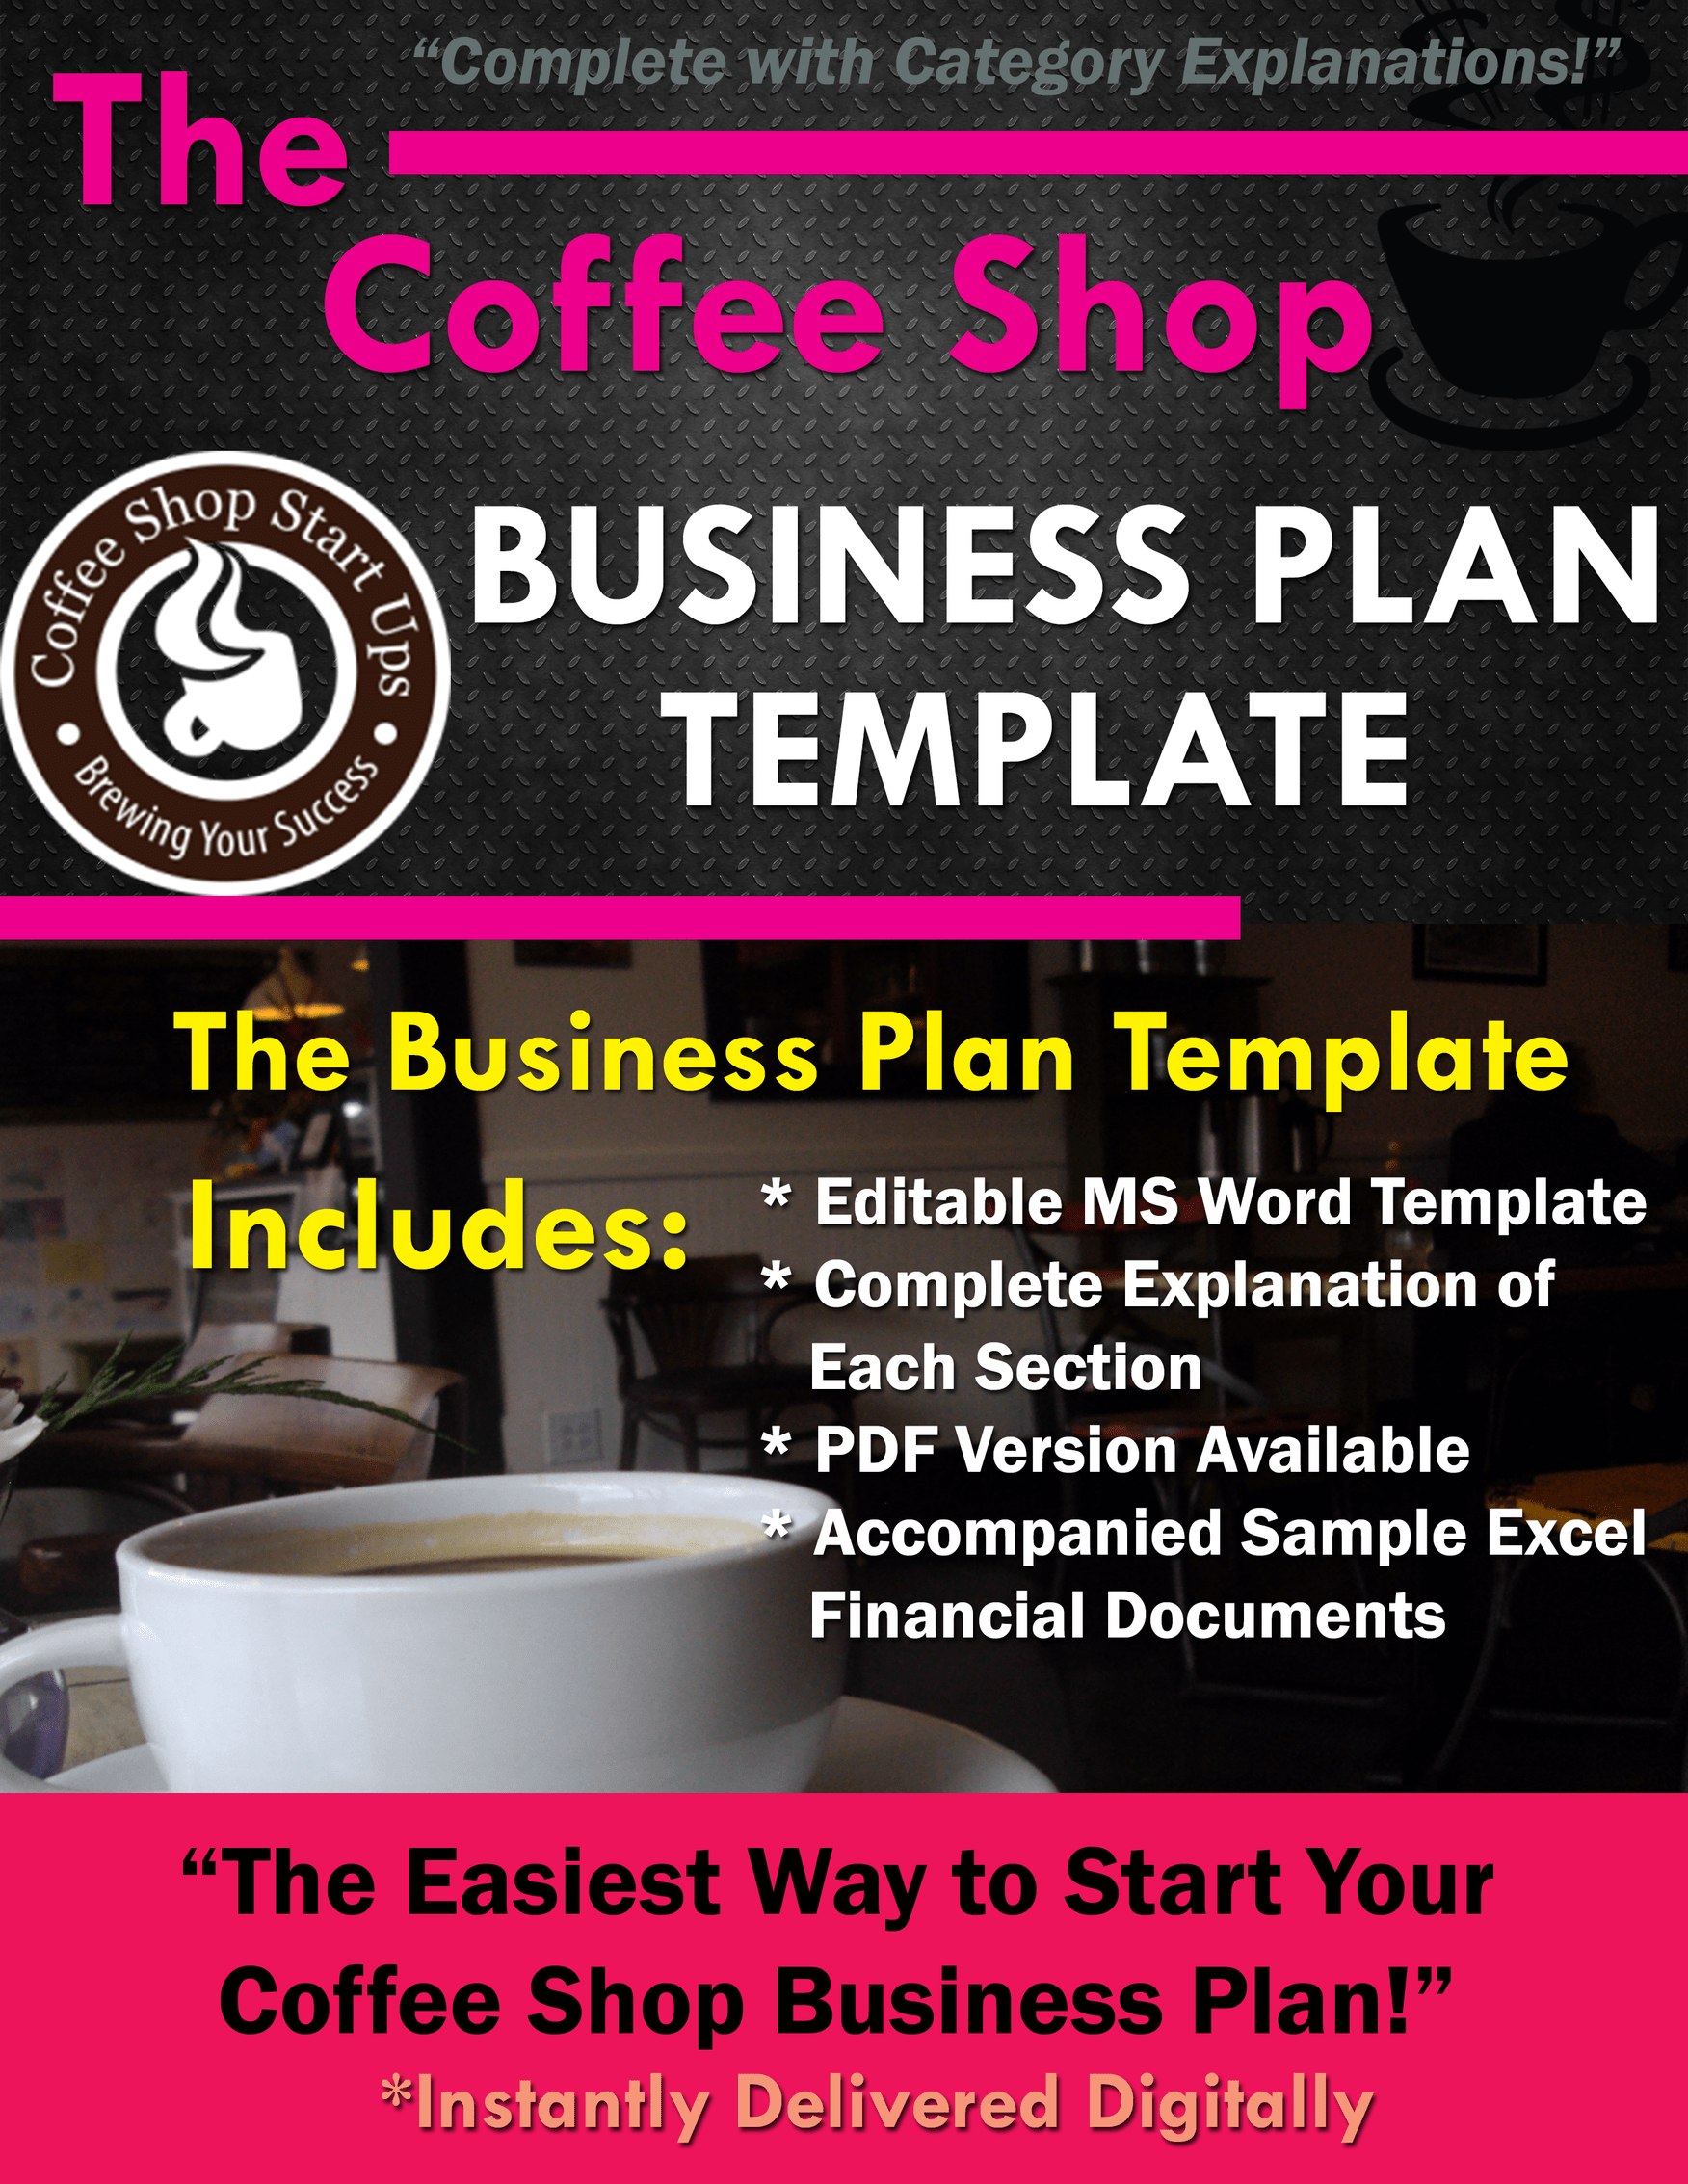 Coffee shop business plan write your business plan for your coffee coffee shop business plan write your business plan for your coffee shop accmission Image collections